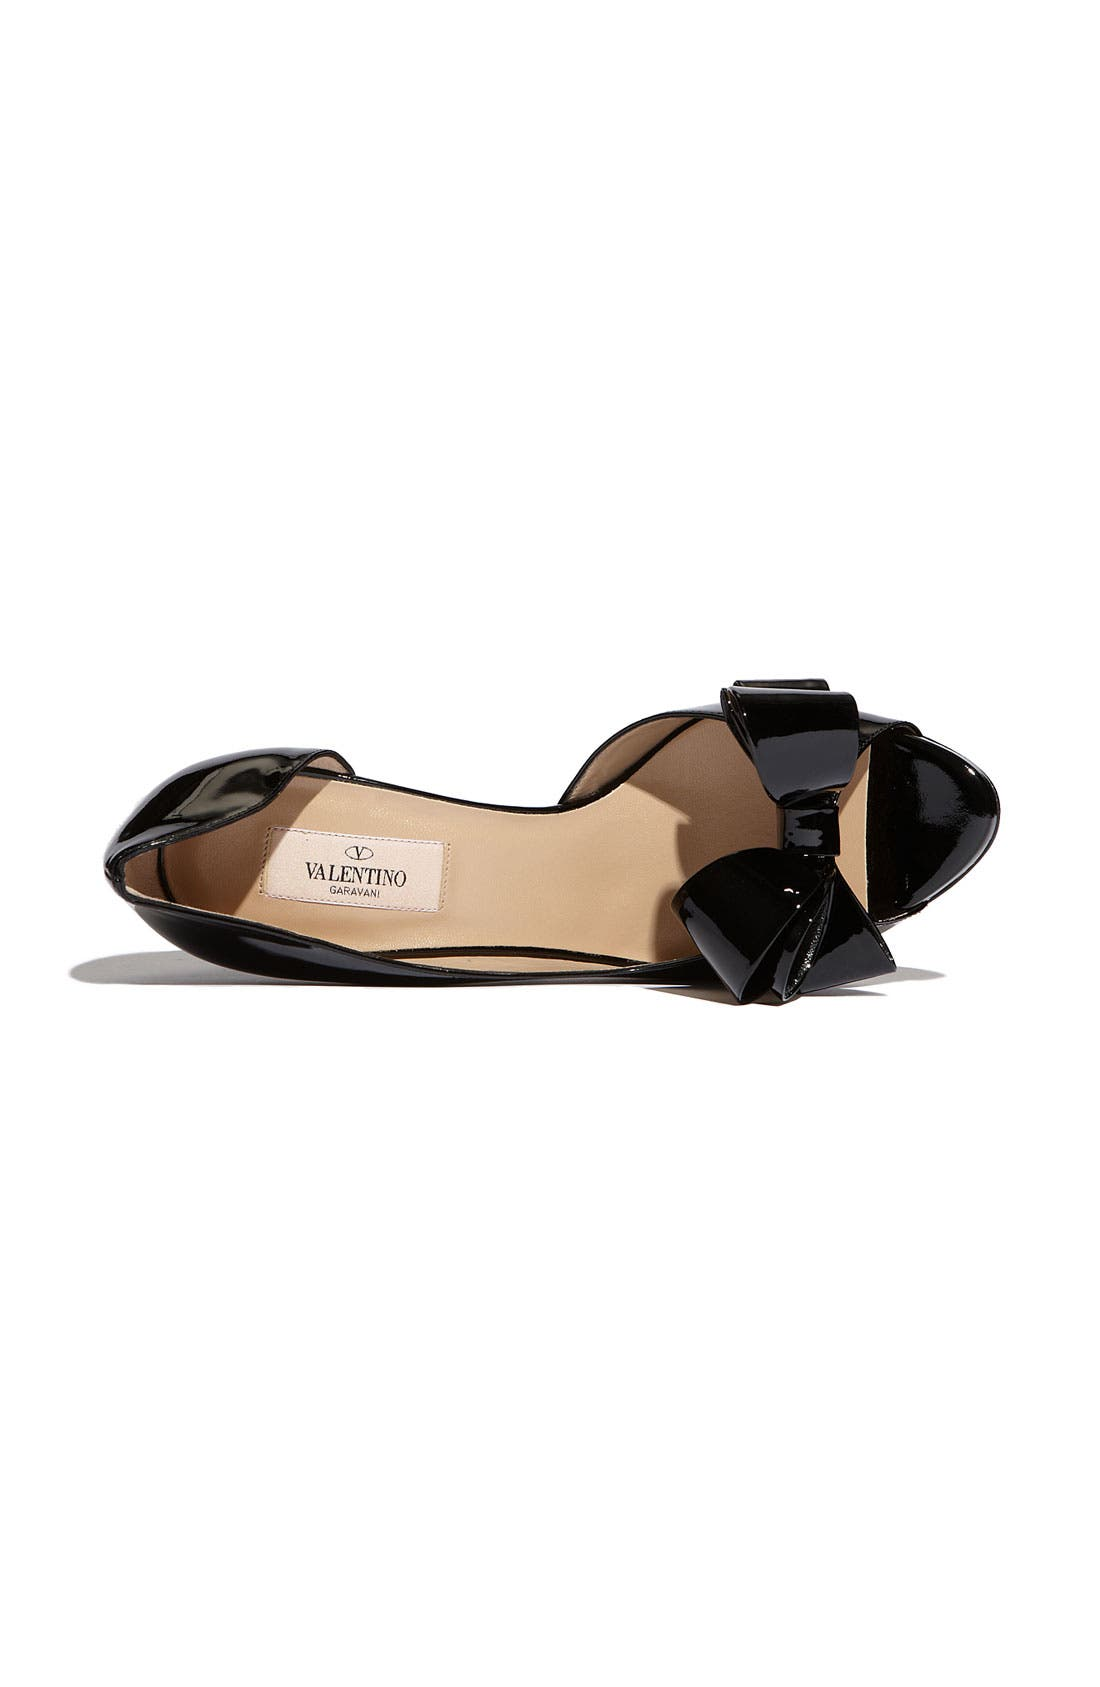 Couture Bow d'Orsay Pump,                             Alternate thumbnail 2, color,                             001